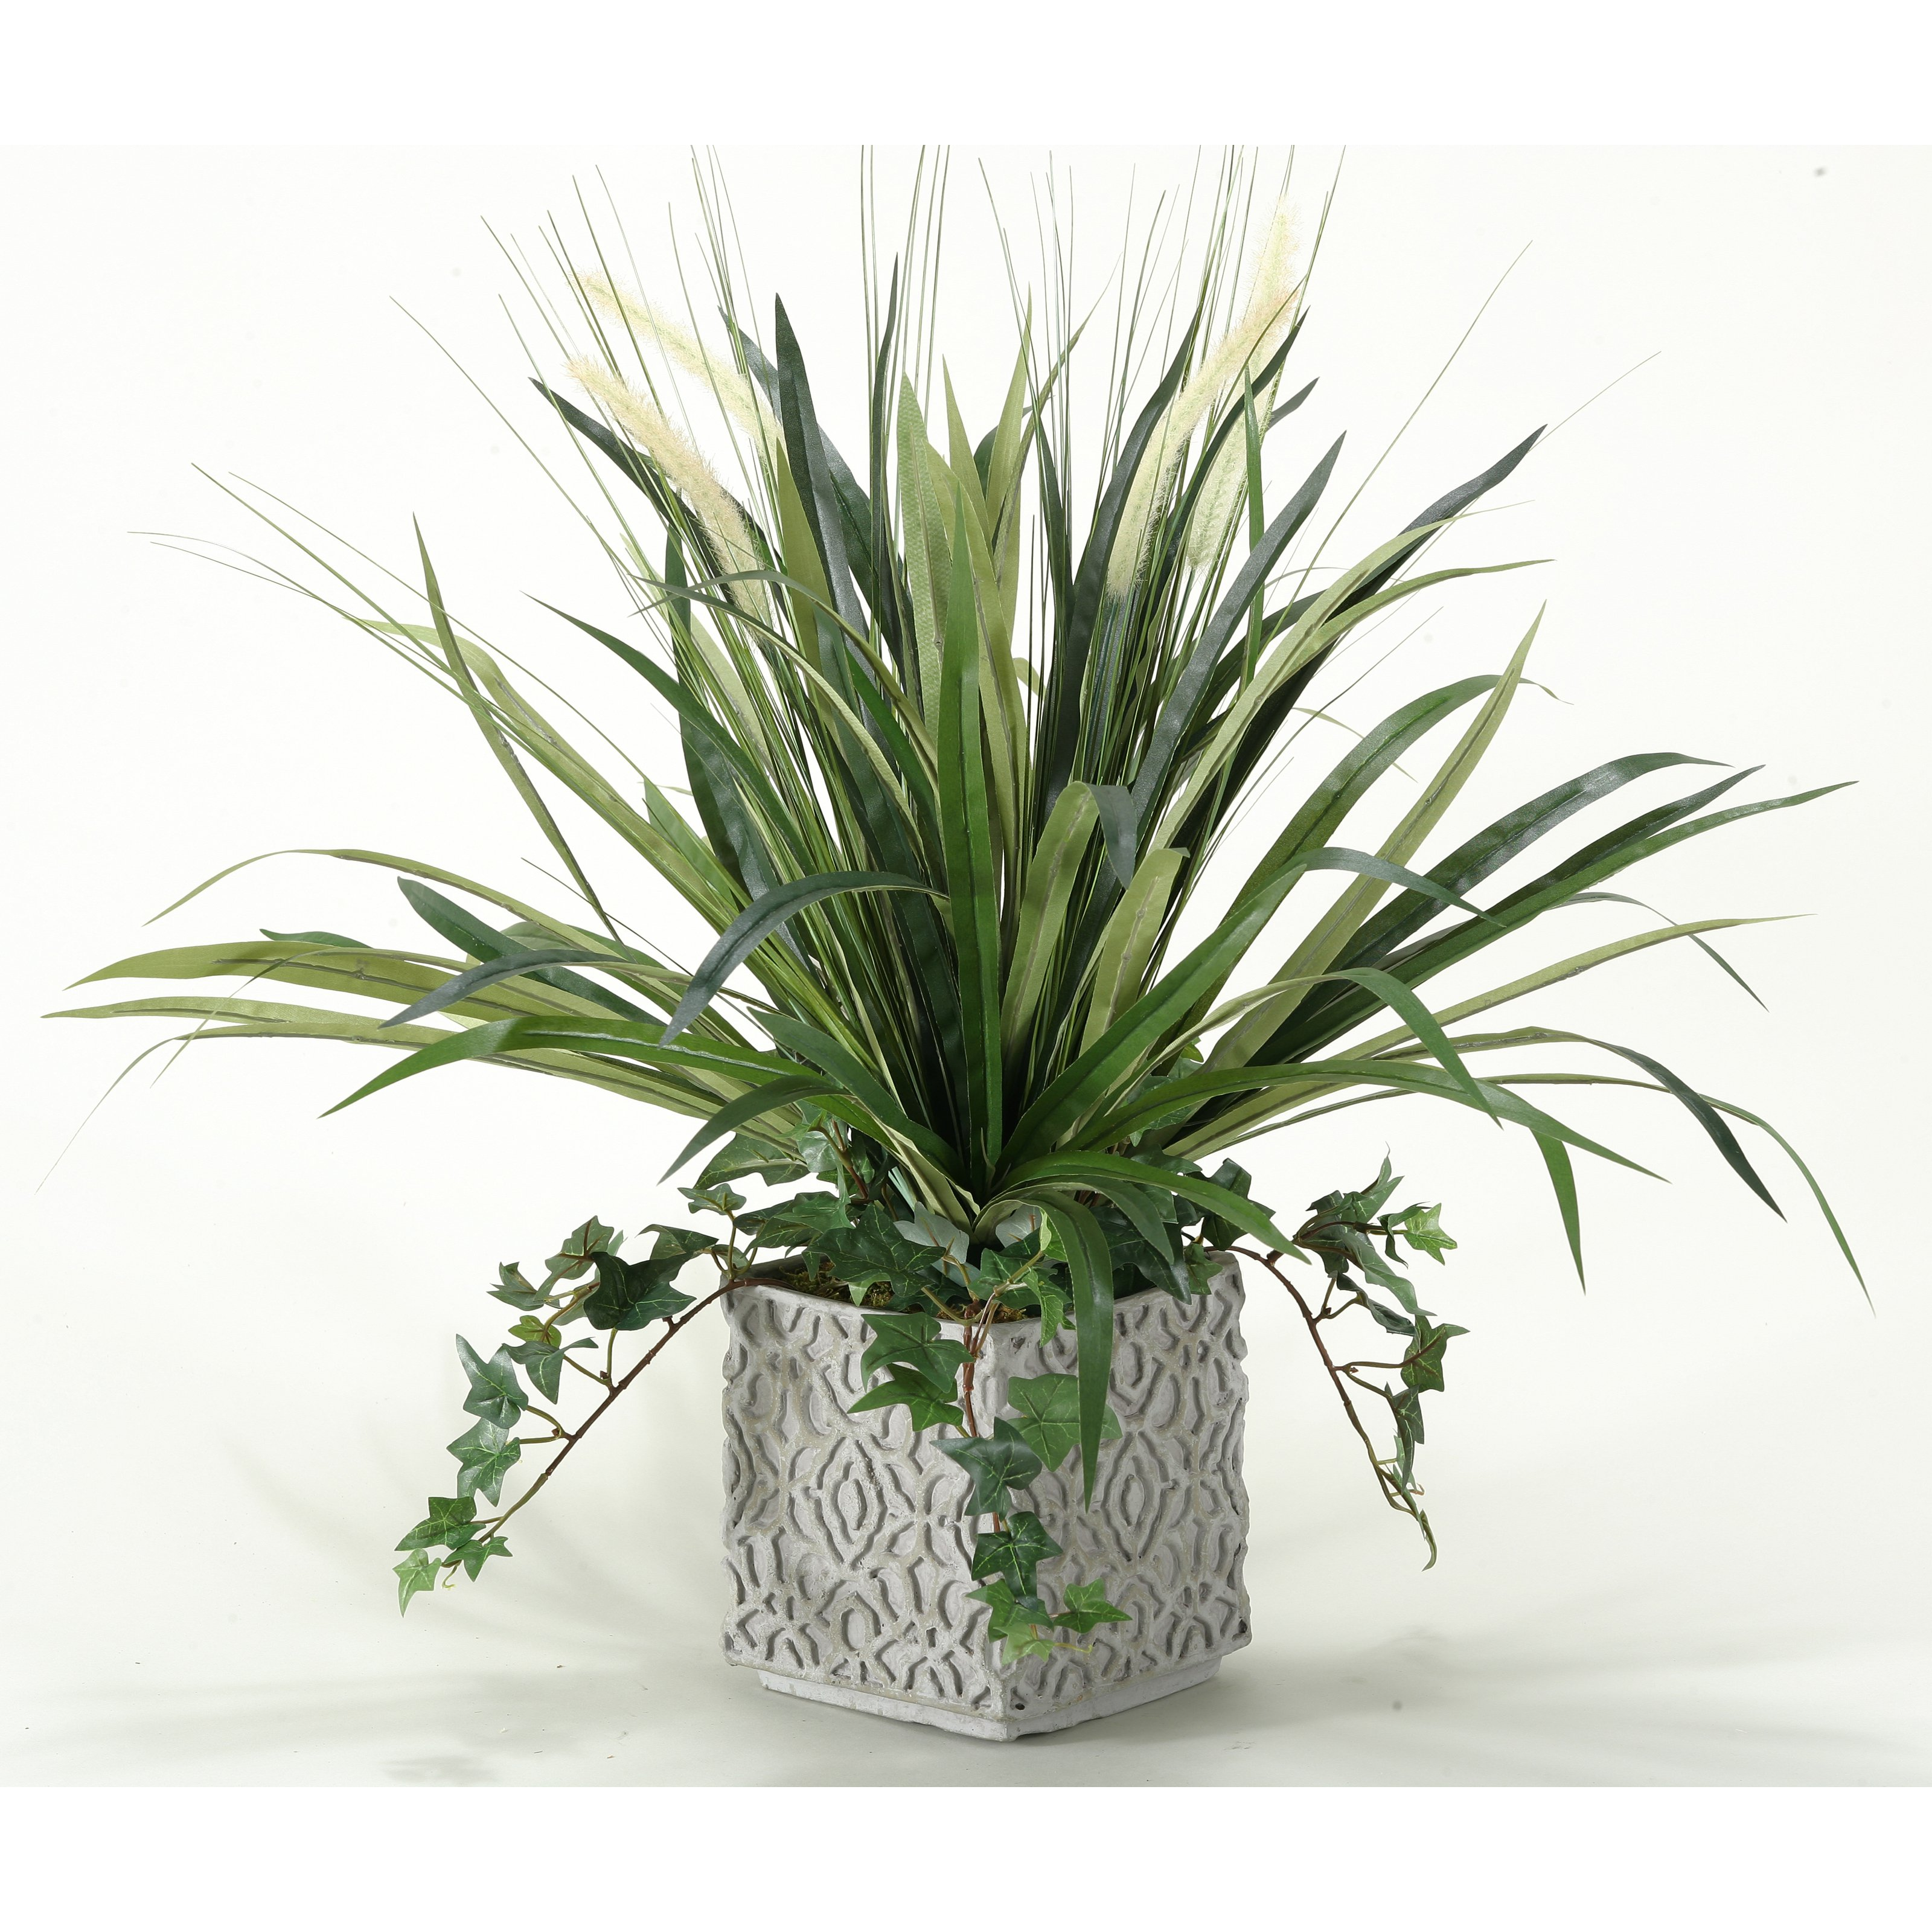 D & W Silks Onion Grass and Spider Plant in Square Ceramic Planter